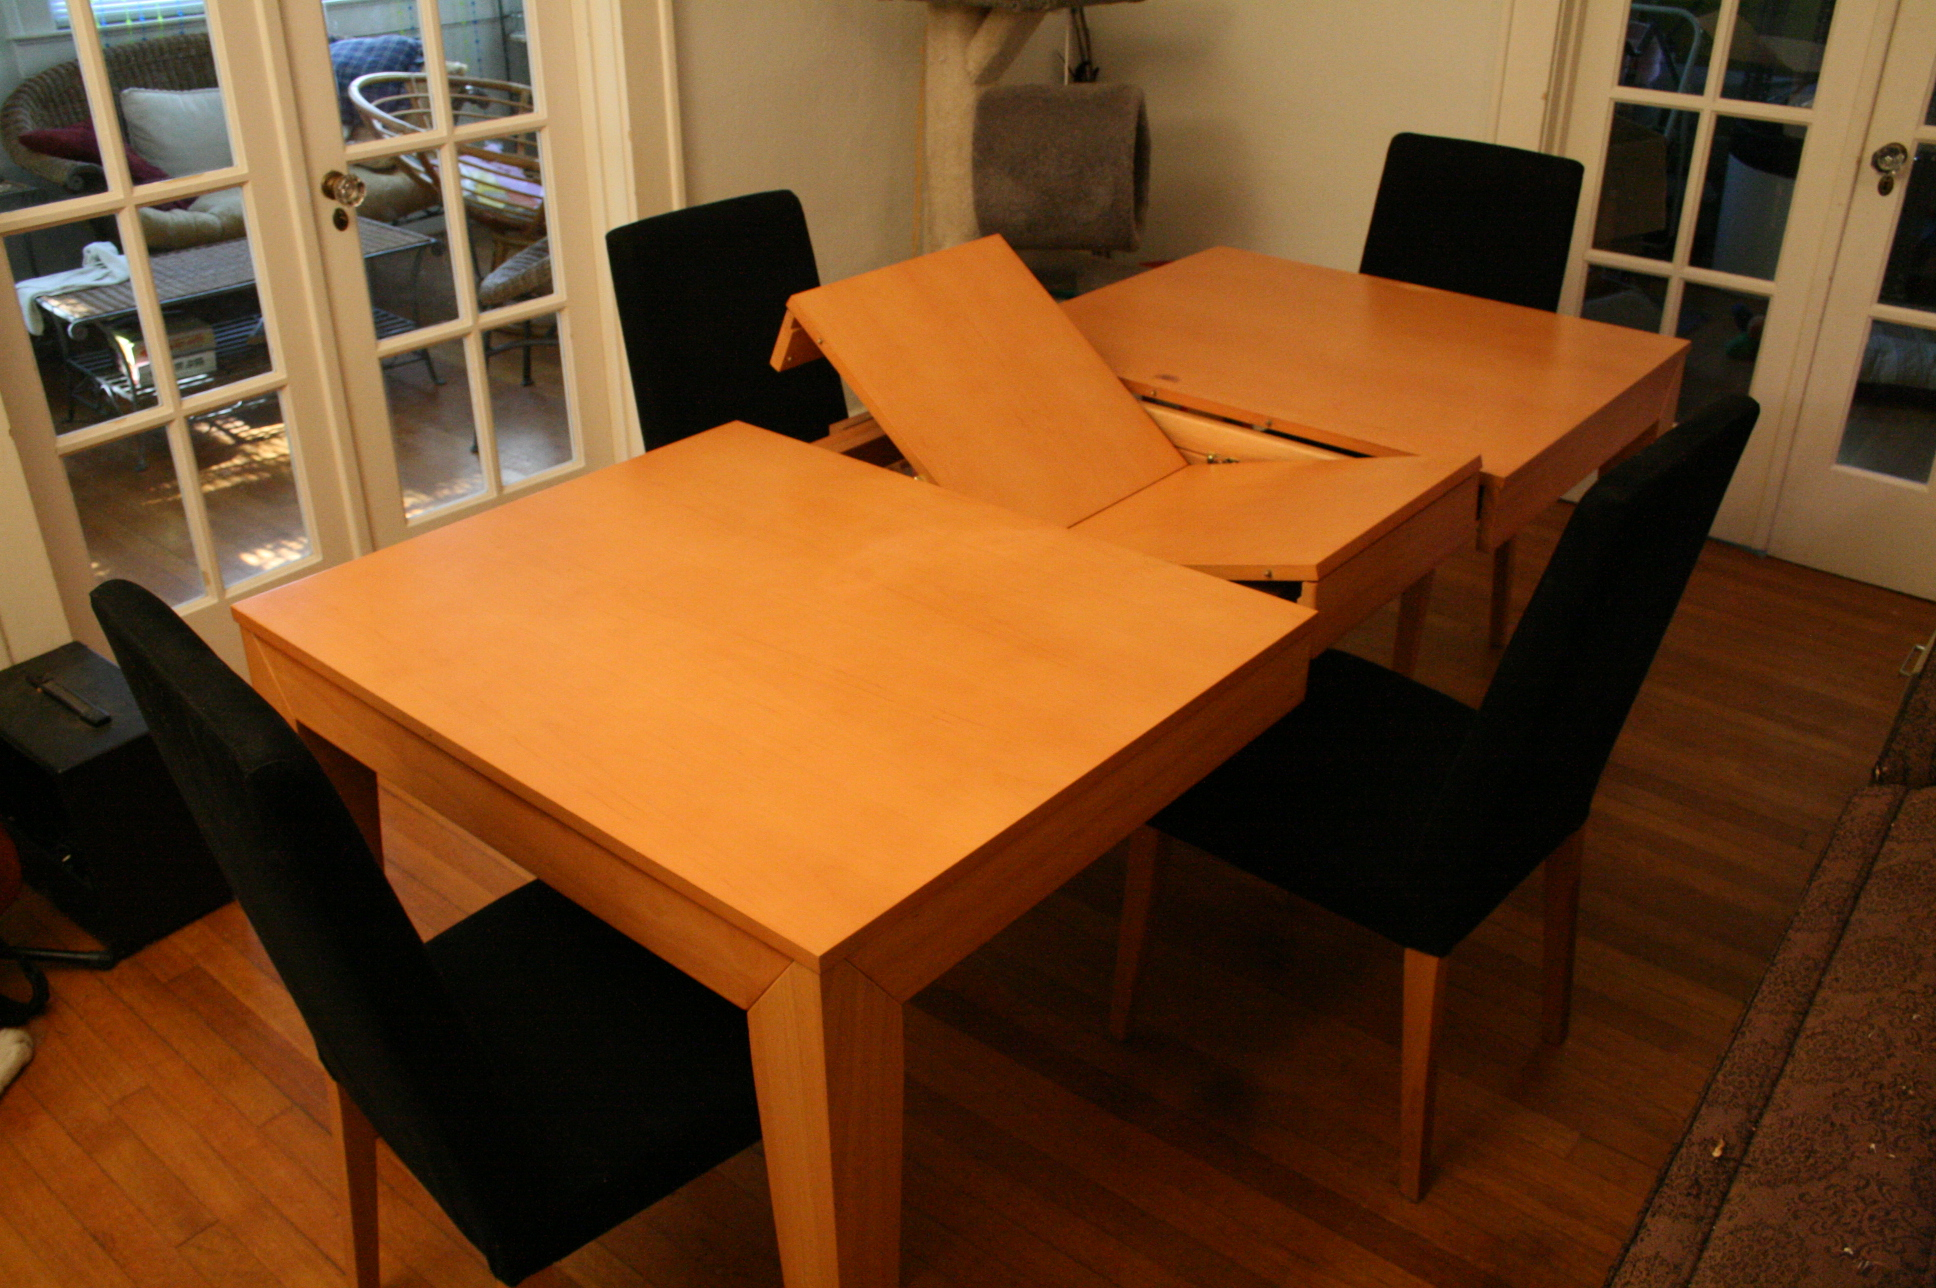 File2008 04 13 Expandable table expandingjpg Wikimedia Commons